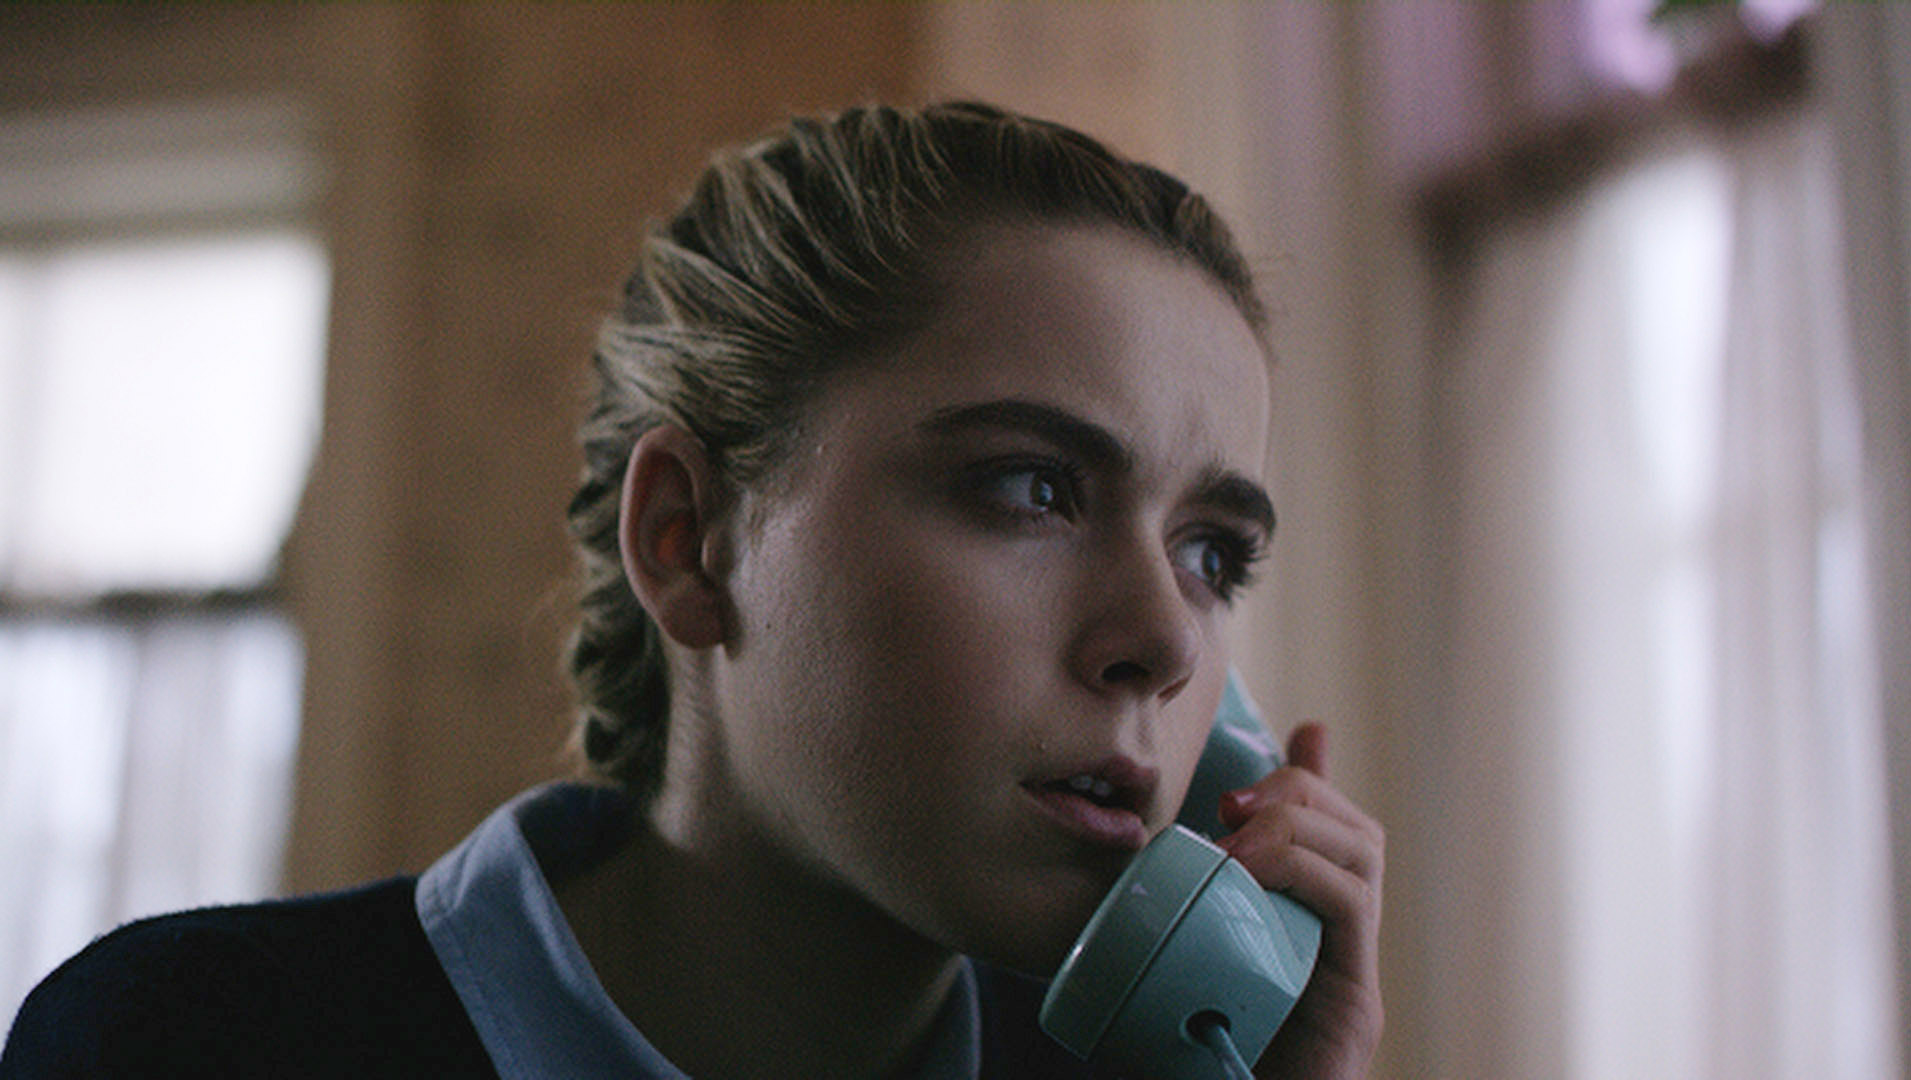 Kiernan looking concerned while talking on the phone